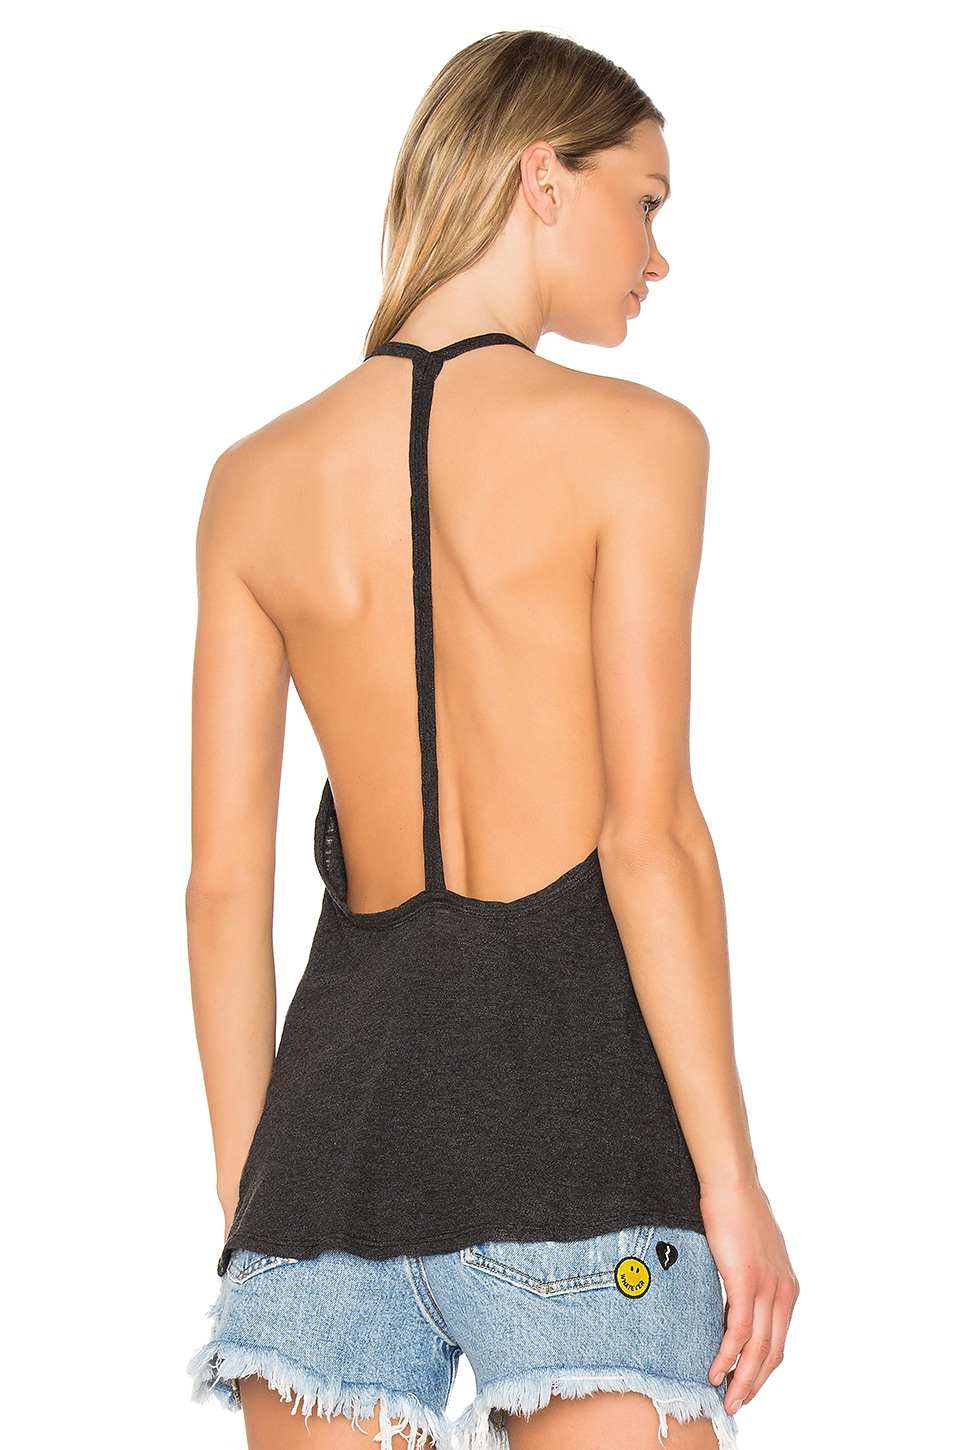 Y Back Cami by Lanston